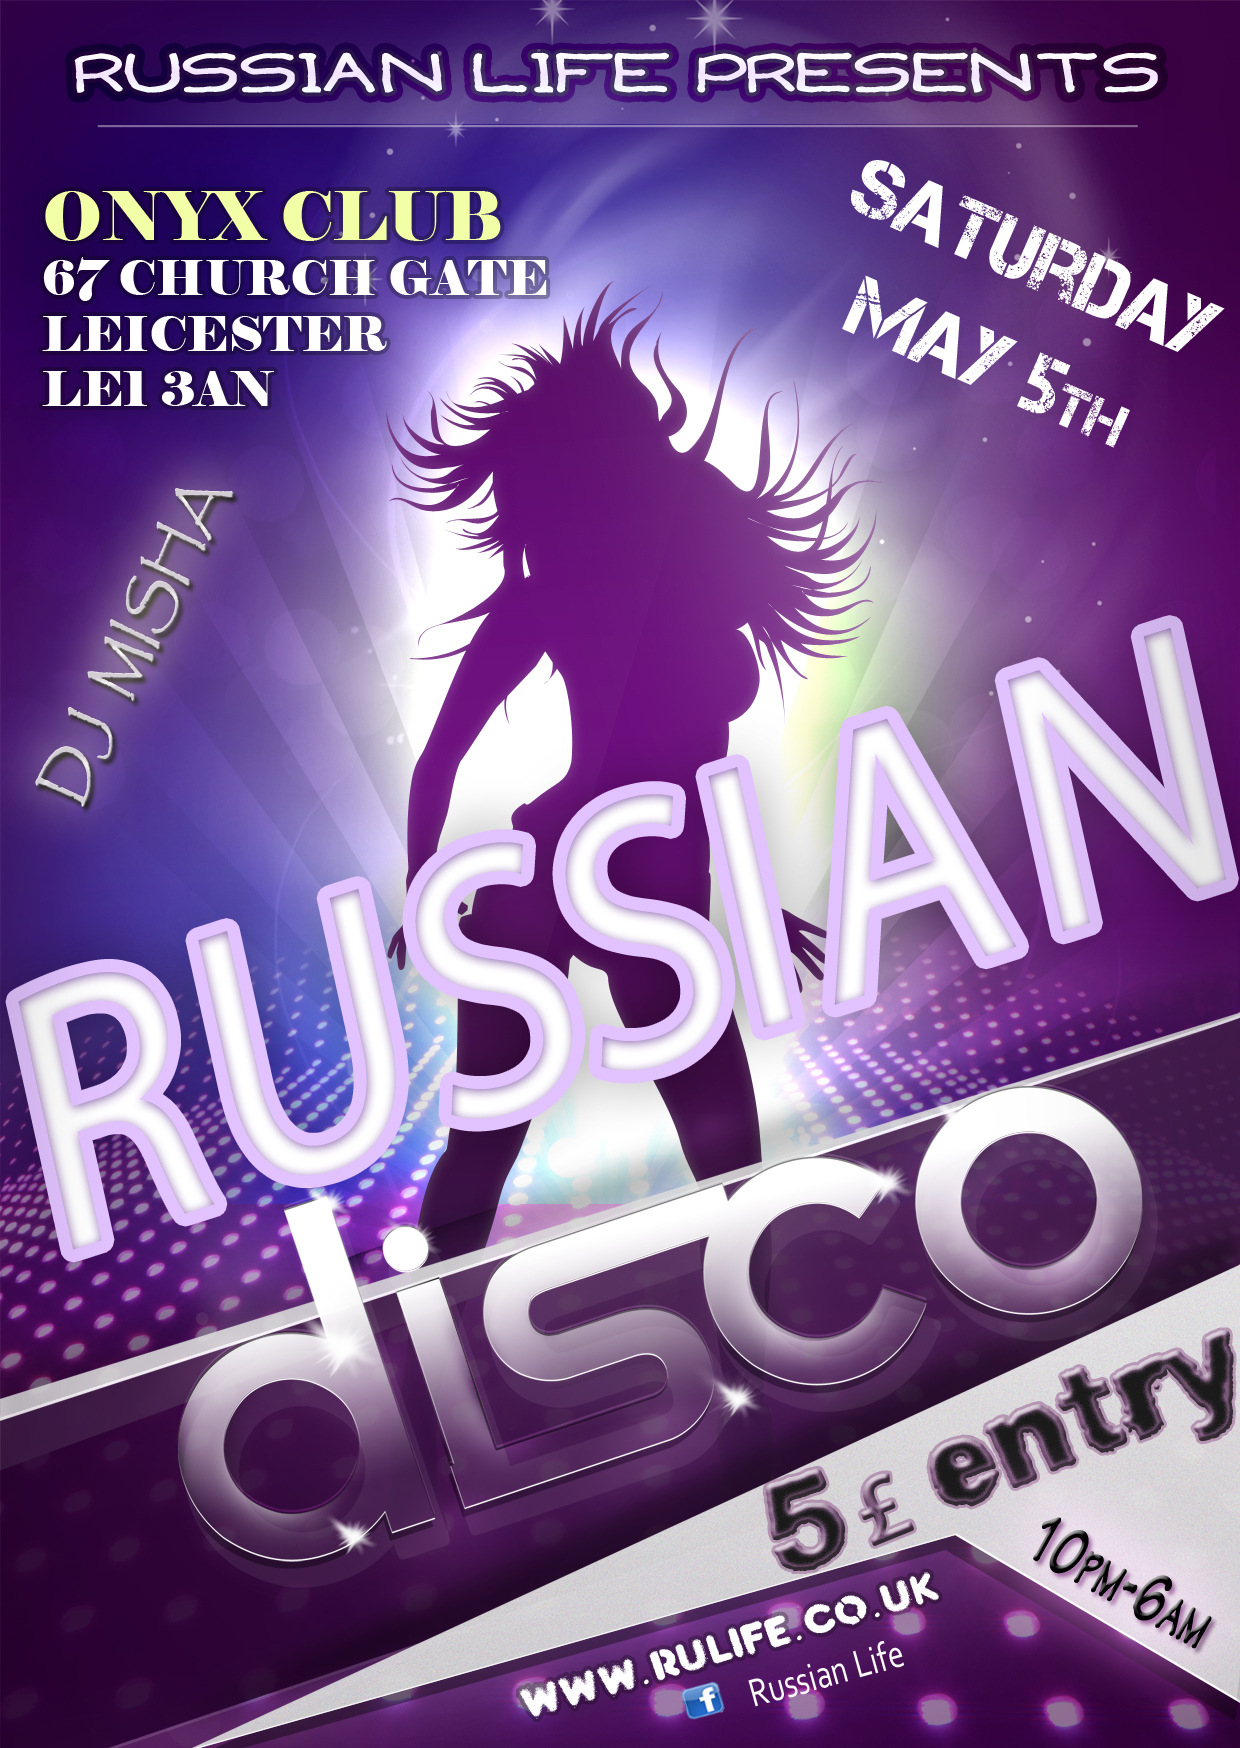 Русская дискотека в Лестере (Russian party in Leicester) 05.05.12